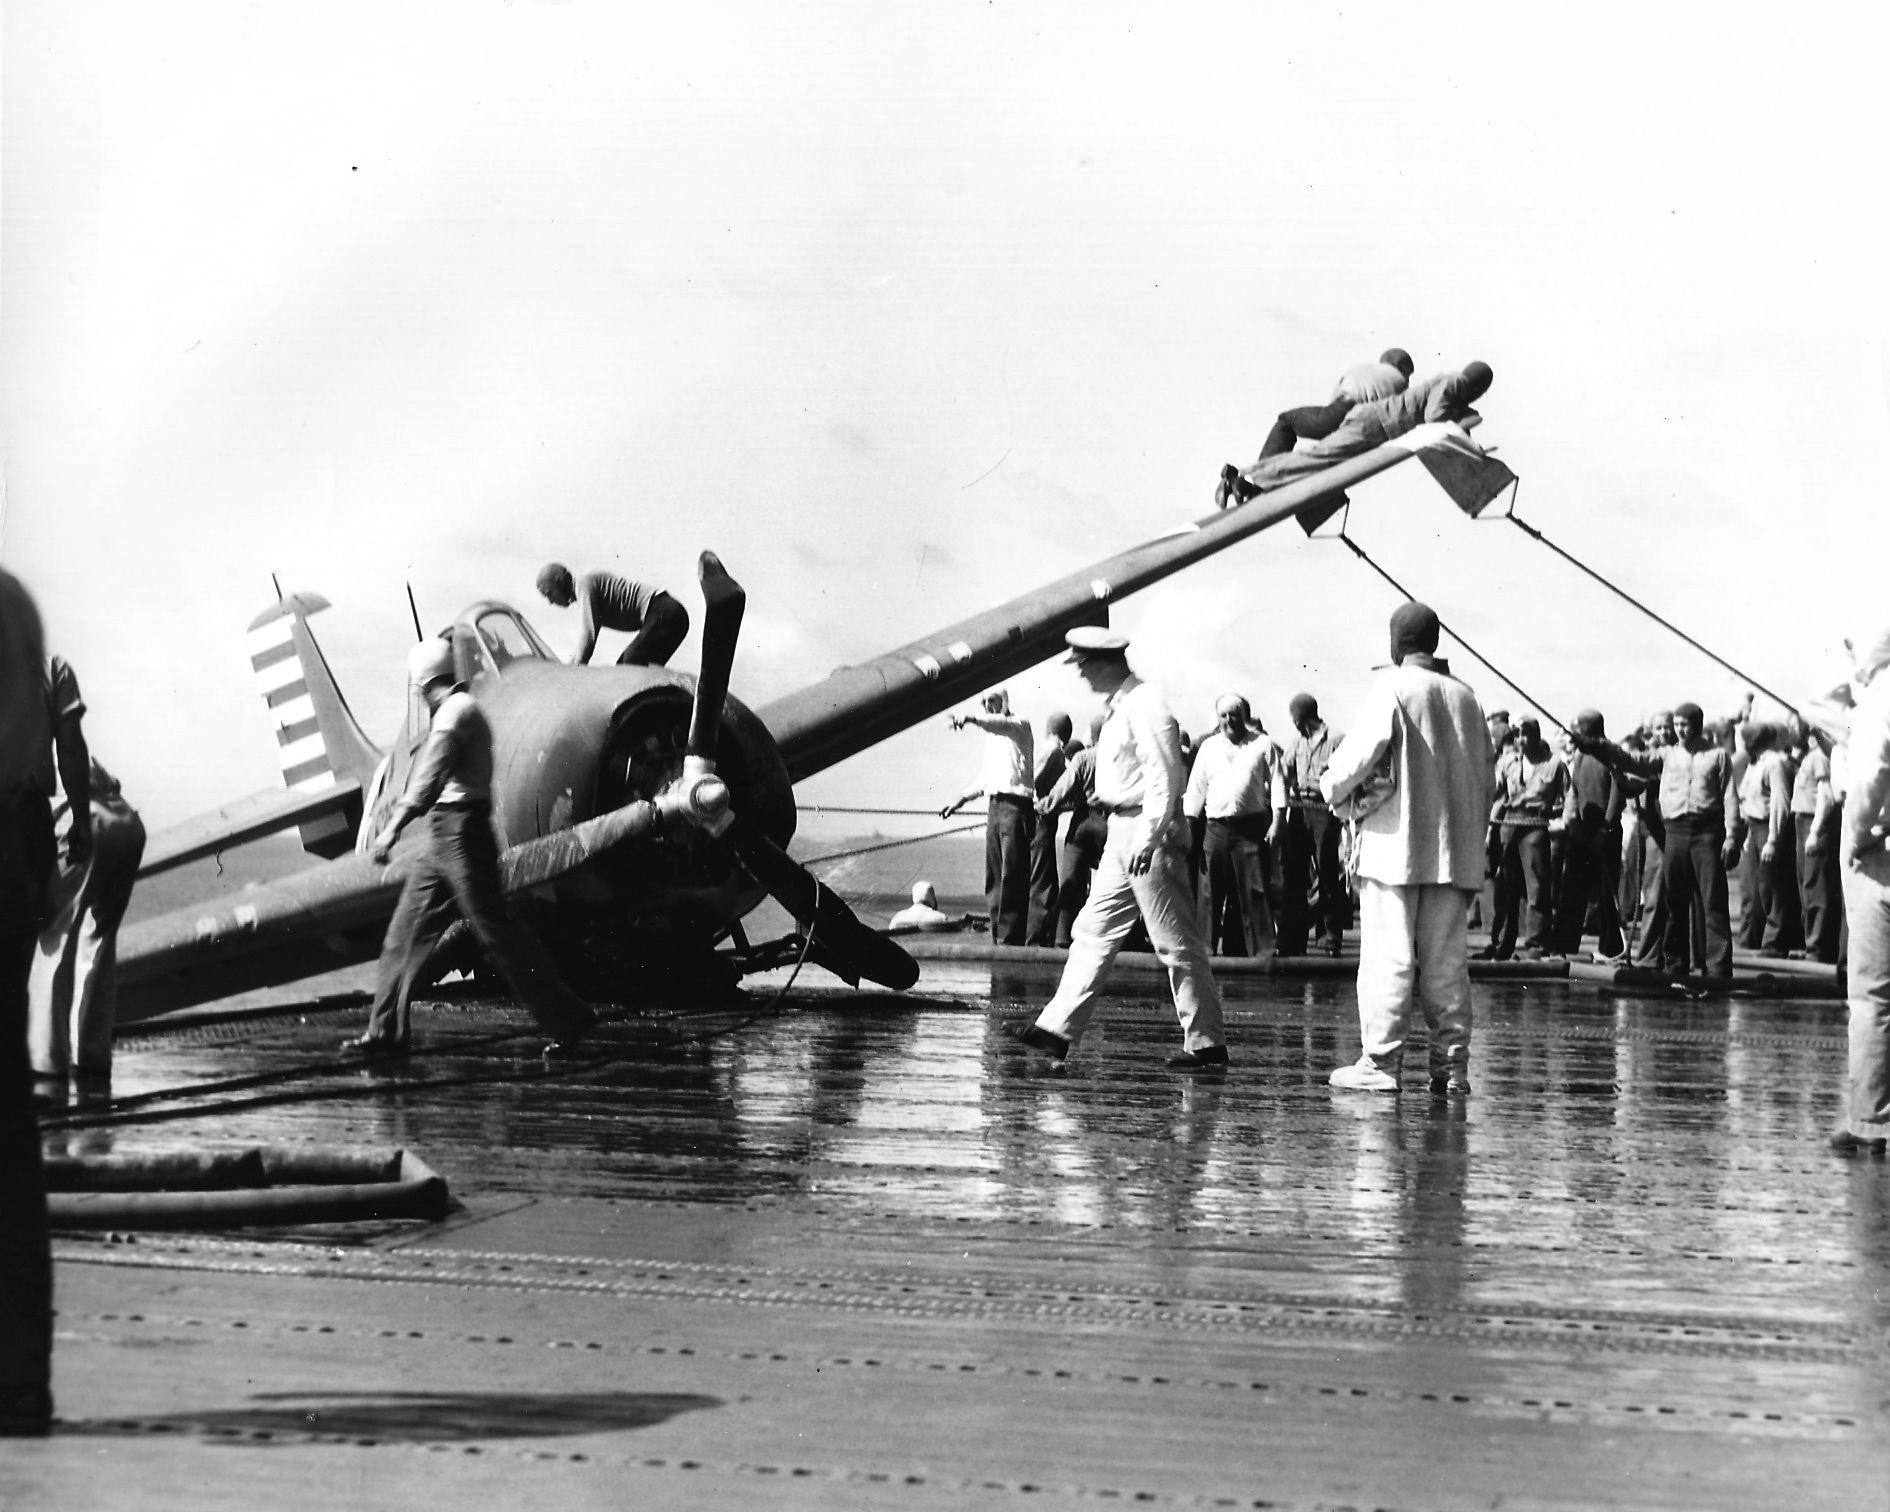 Grumman F4F 3 Wildcat landing mishap possibly VF 6 20th Aug 1942 01